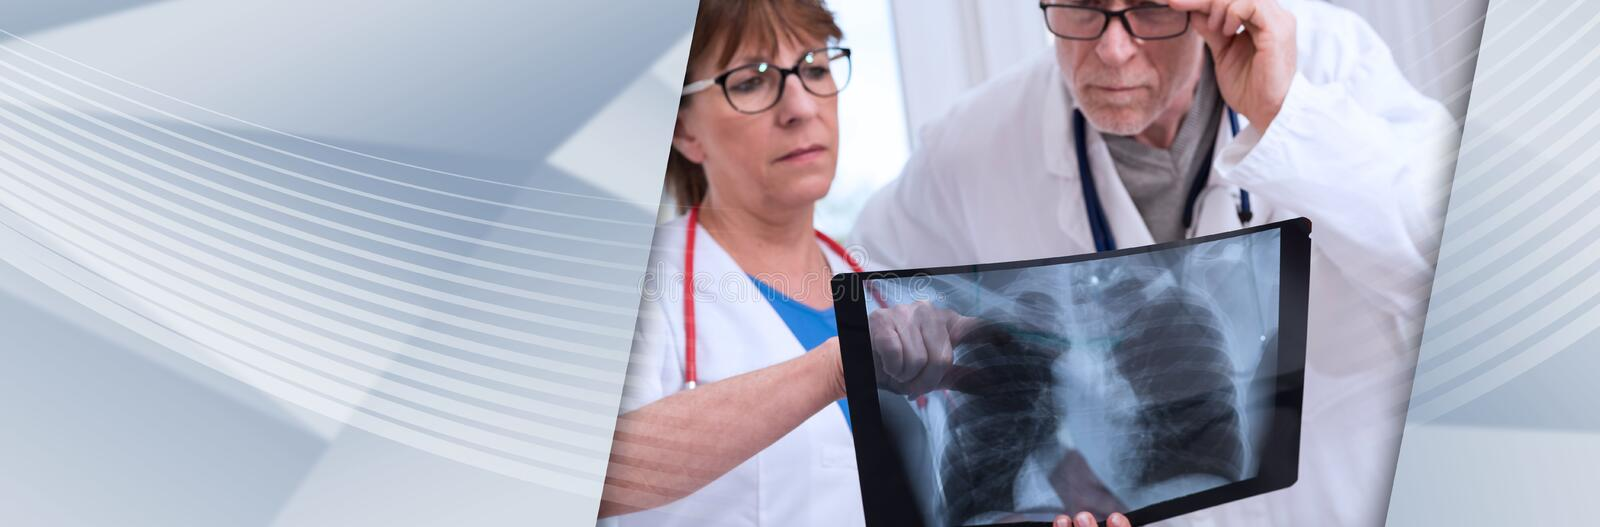 Two doctors examining x-ray report. panoramic banner. Two doctors examining x-ray report in medical office. panoramic banner royalty free stock photos